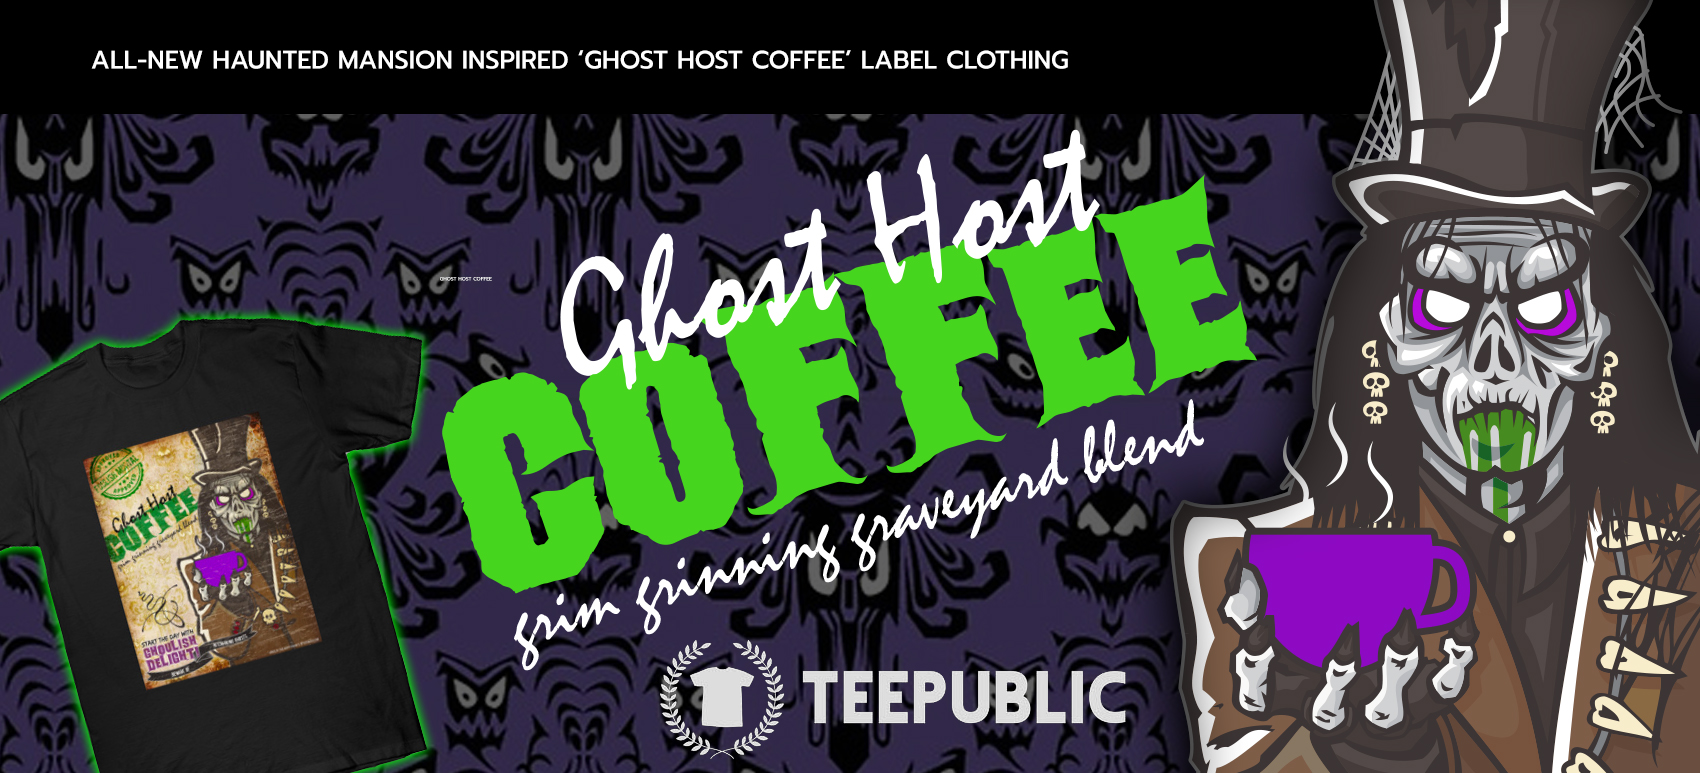 Haunted Mansion Inspired Grim Grinning 'Ghost Host Coffee' Label Clothing Released